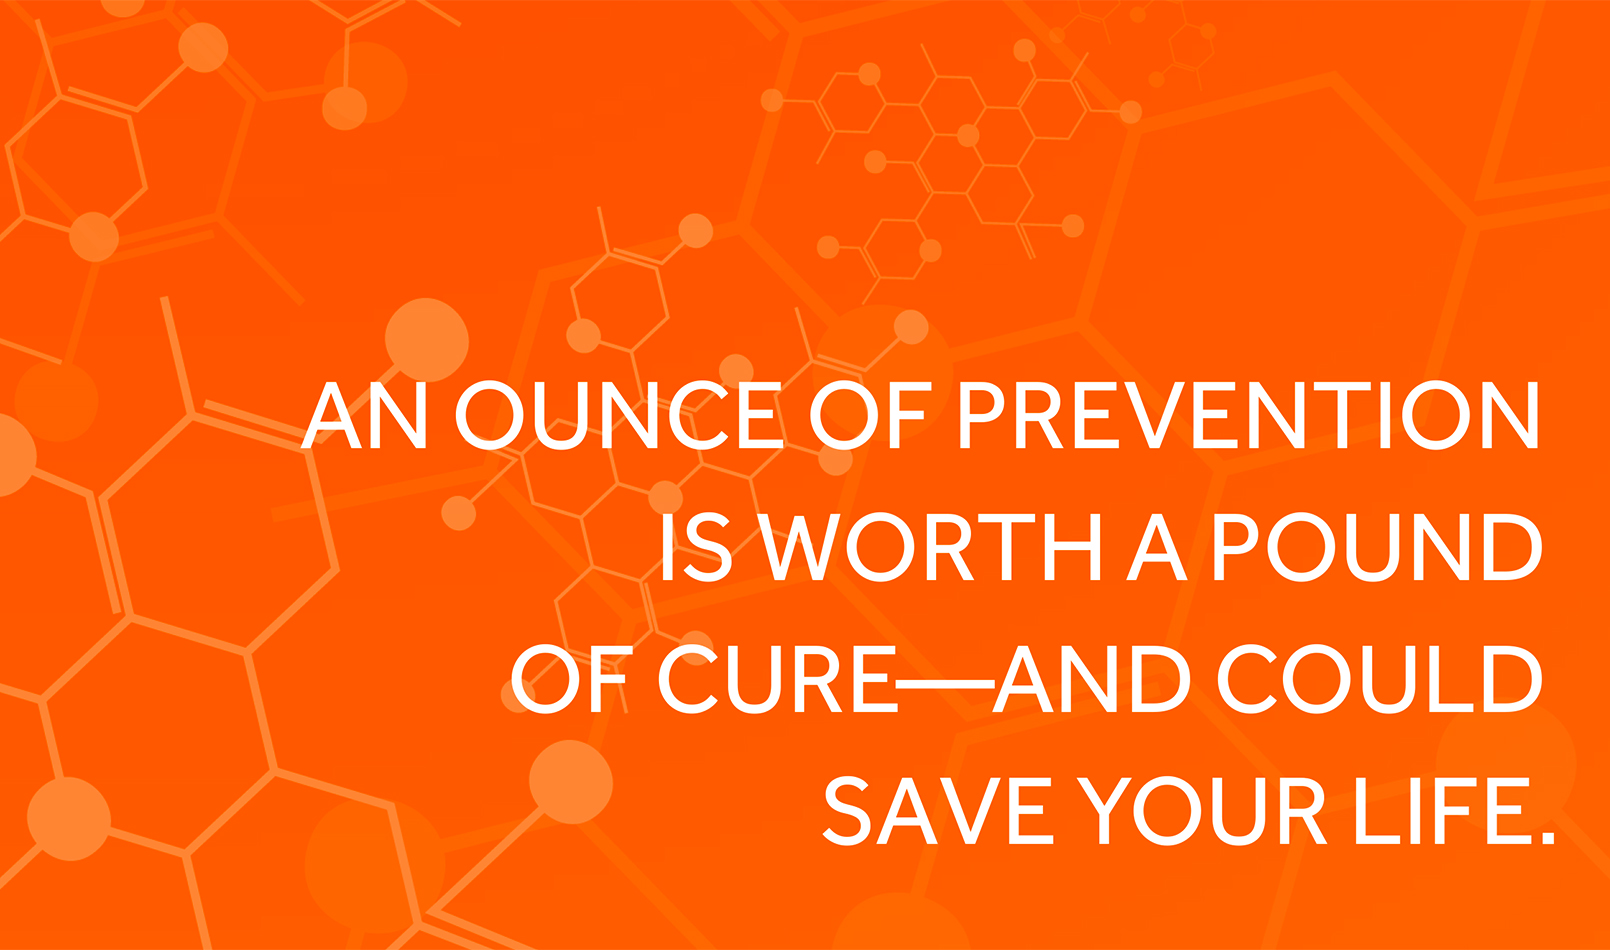 More than half of all colon cancer deaths could be prevented with early detection screening.